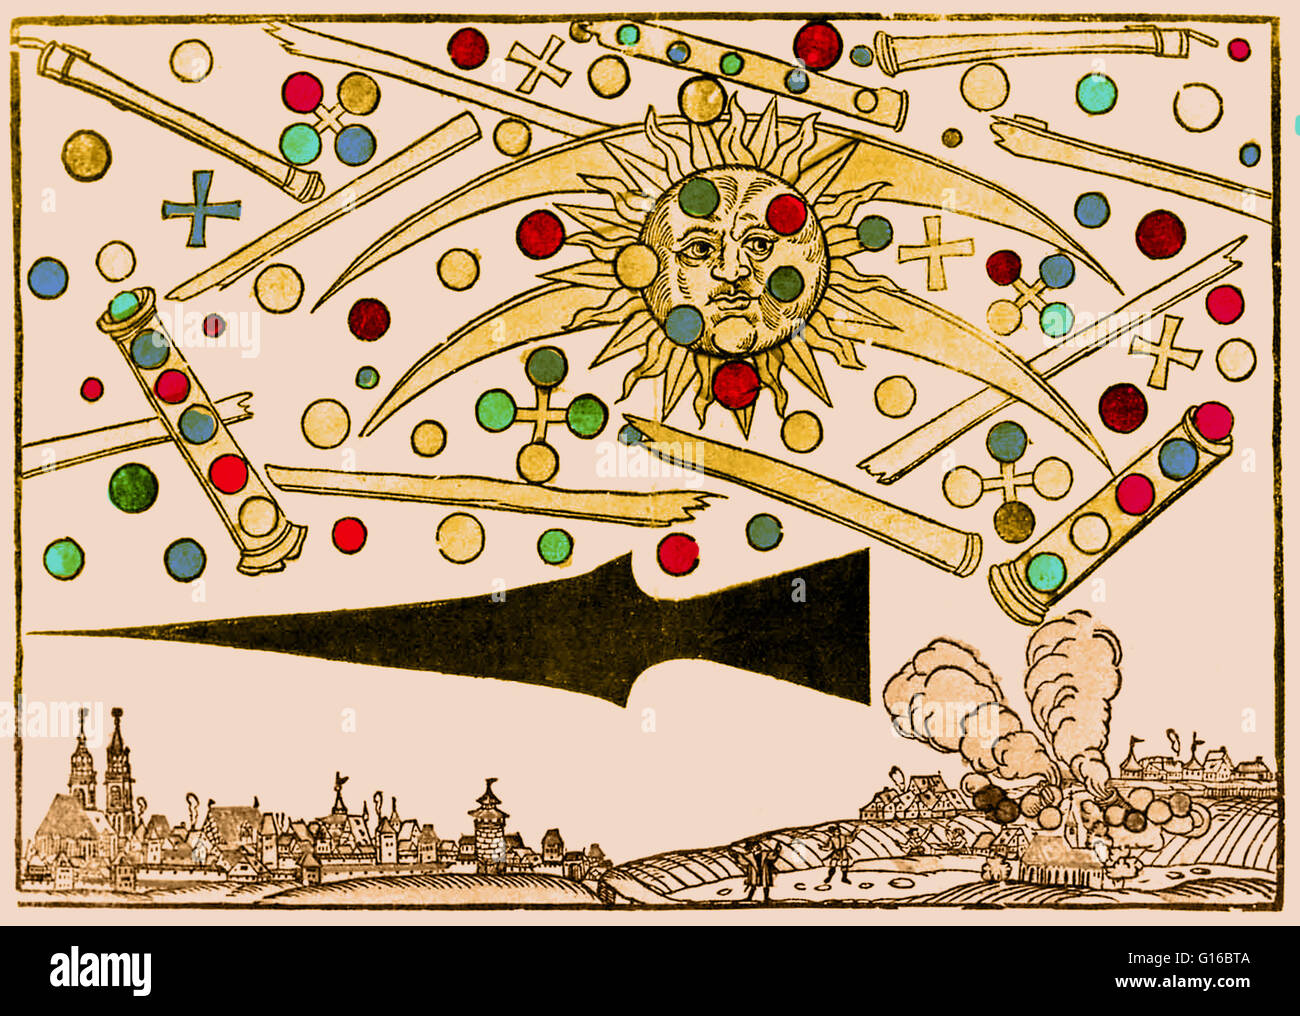 Color enhancment of a 16th century woodcut called Nuremberg UFO by Hans Glaser. At sunrise on the April 14, 1561, Stock Photo